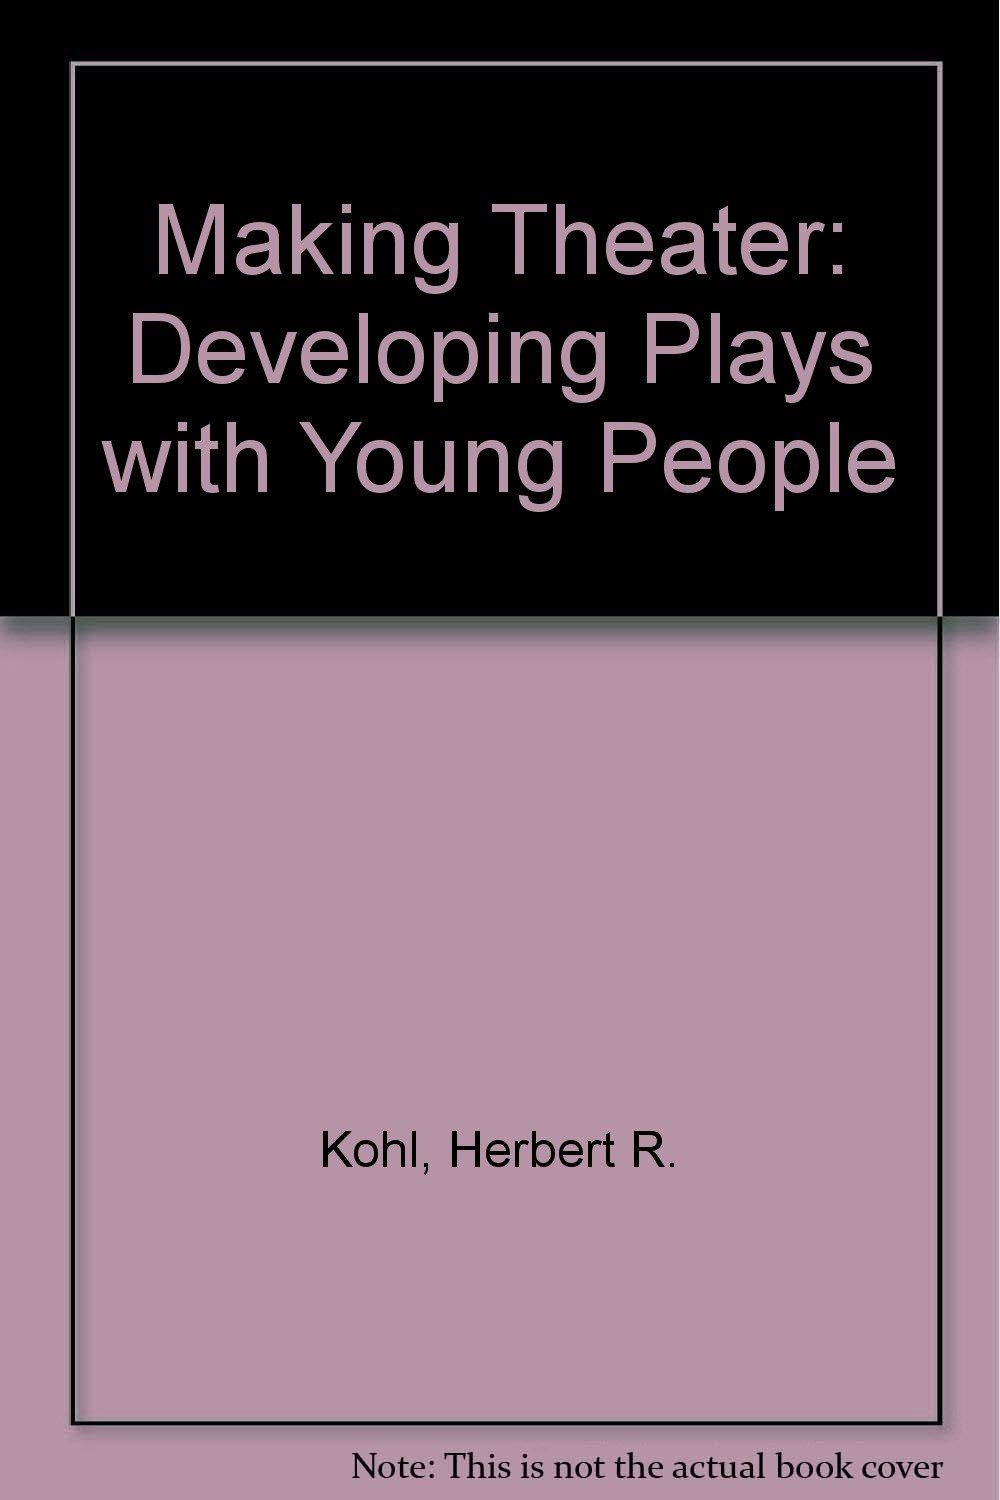 Making Theater: Developing Plays With Young People